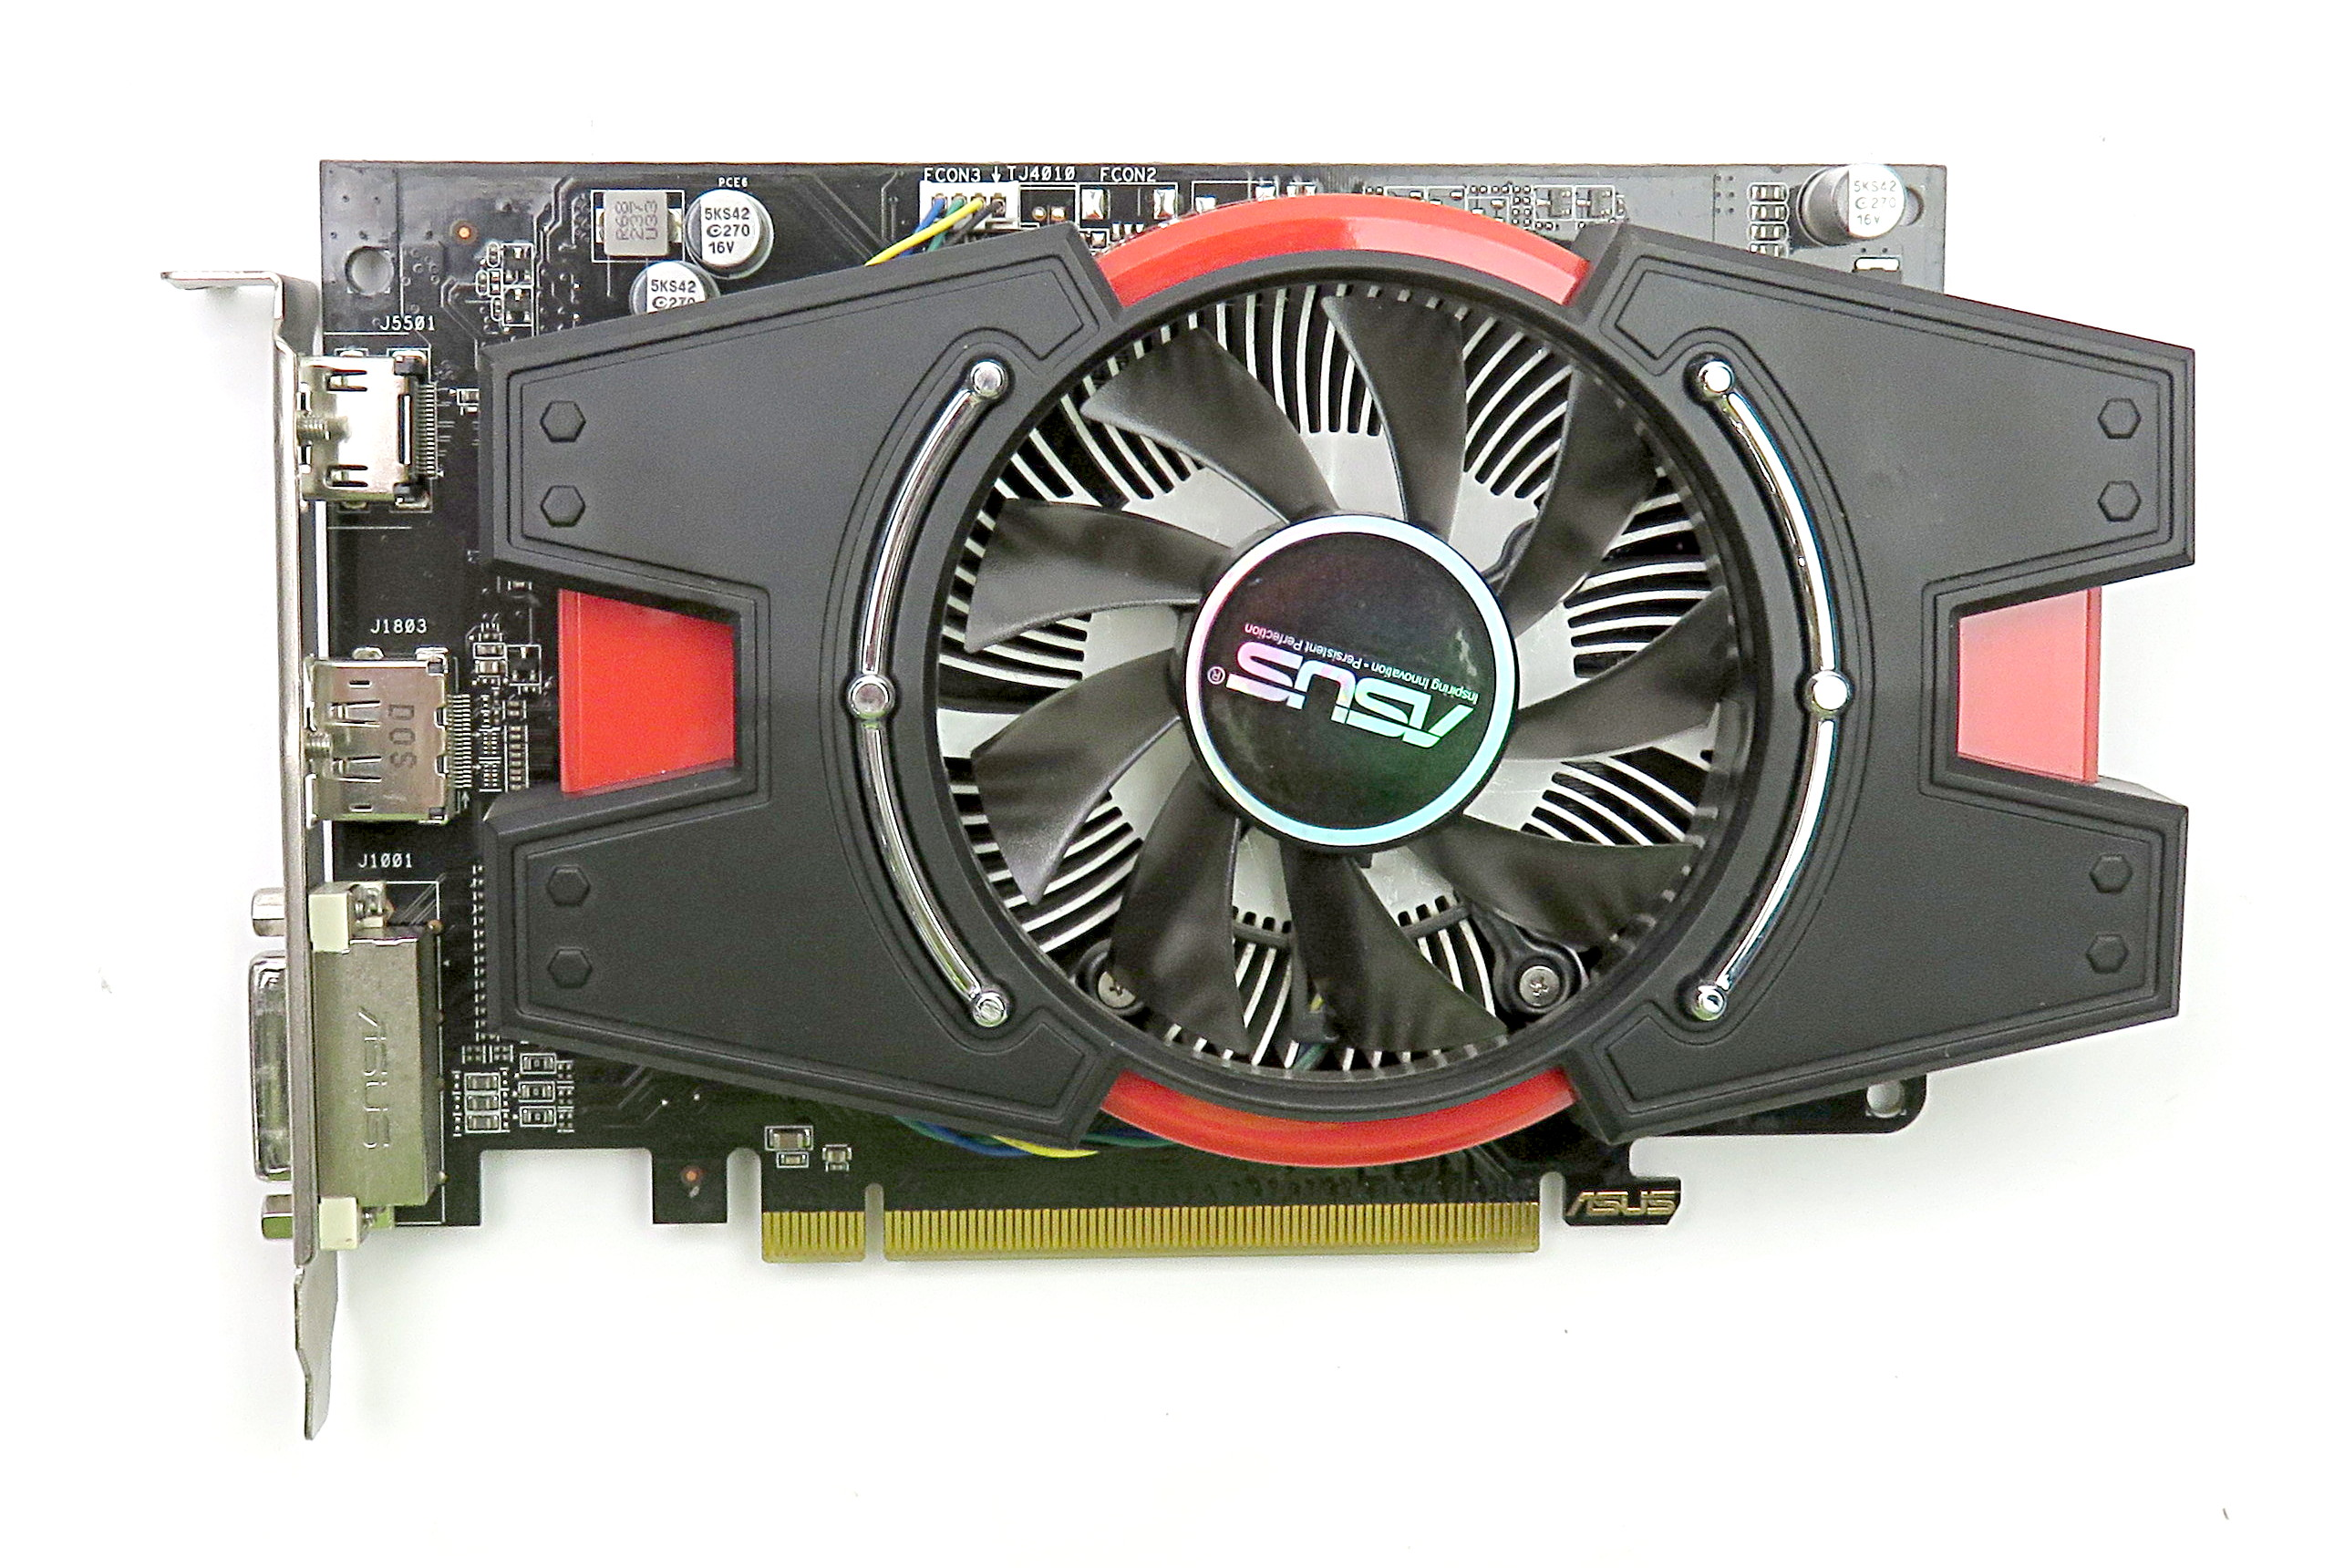 Asus AMD Radeon HD 6670 1GB GDDR5 Graphics Card EAH6670/DIS/1GD5 HDMI/DP/DVI-I